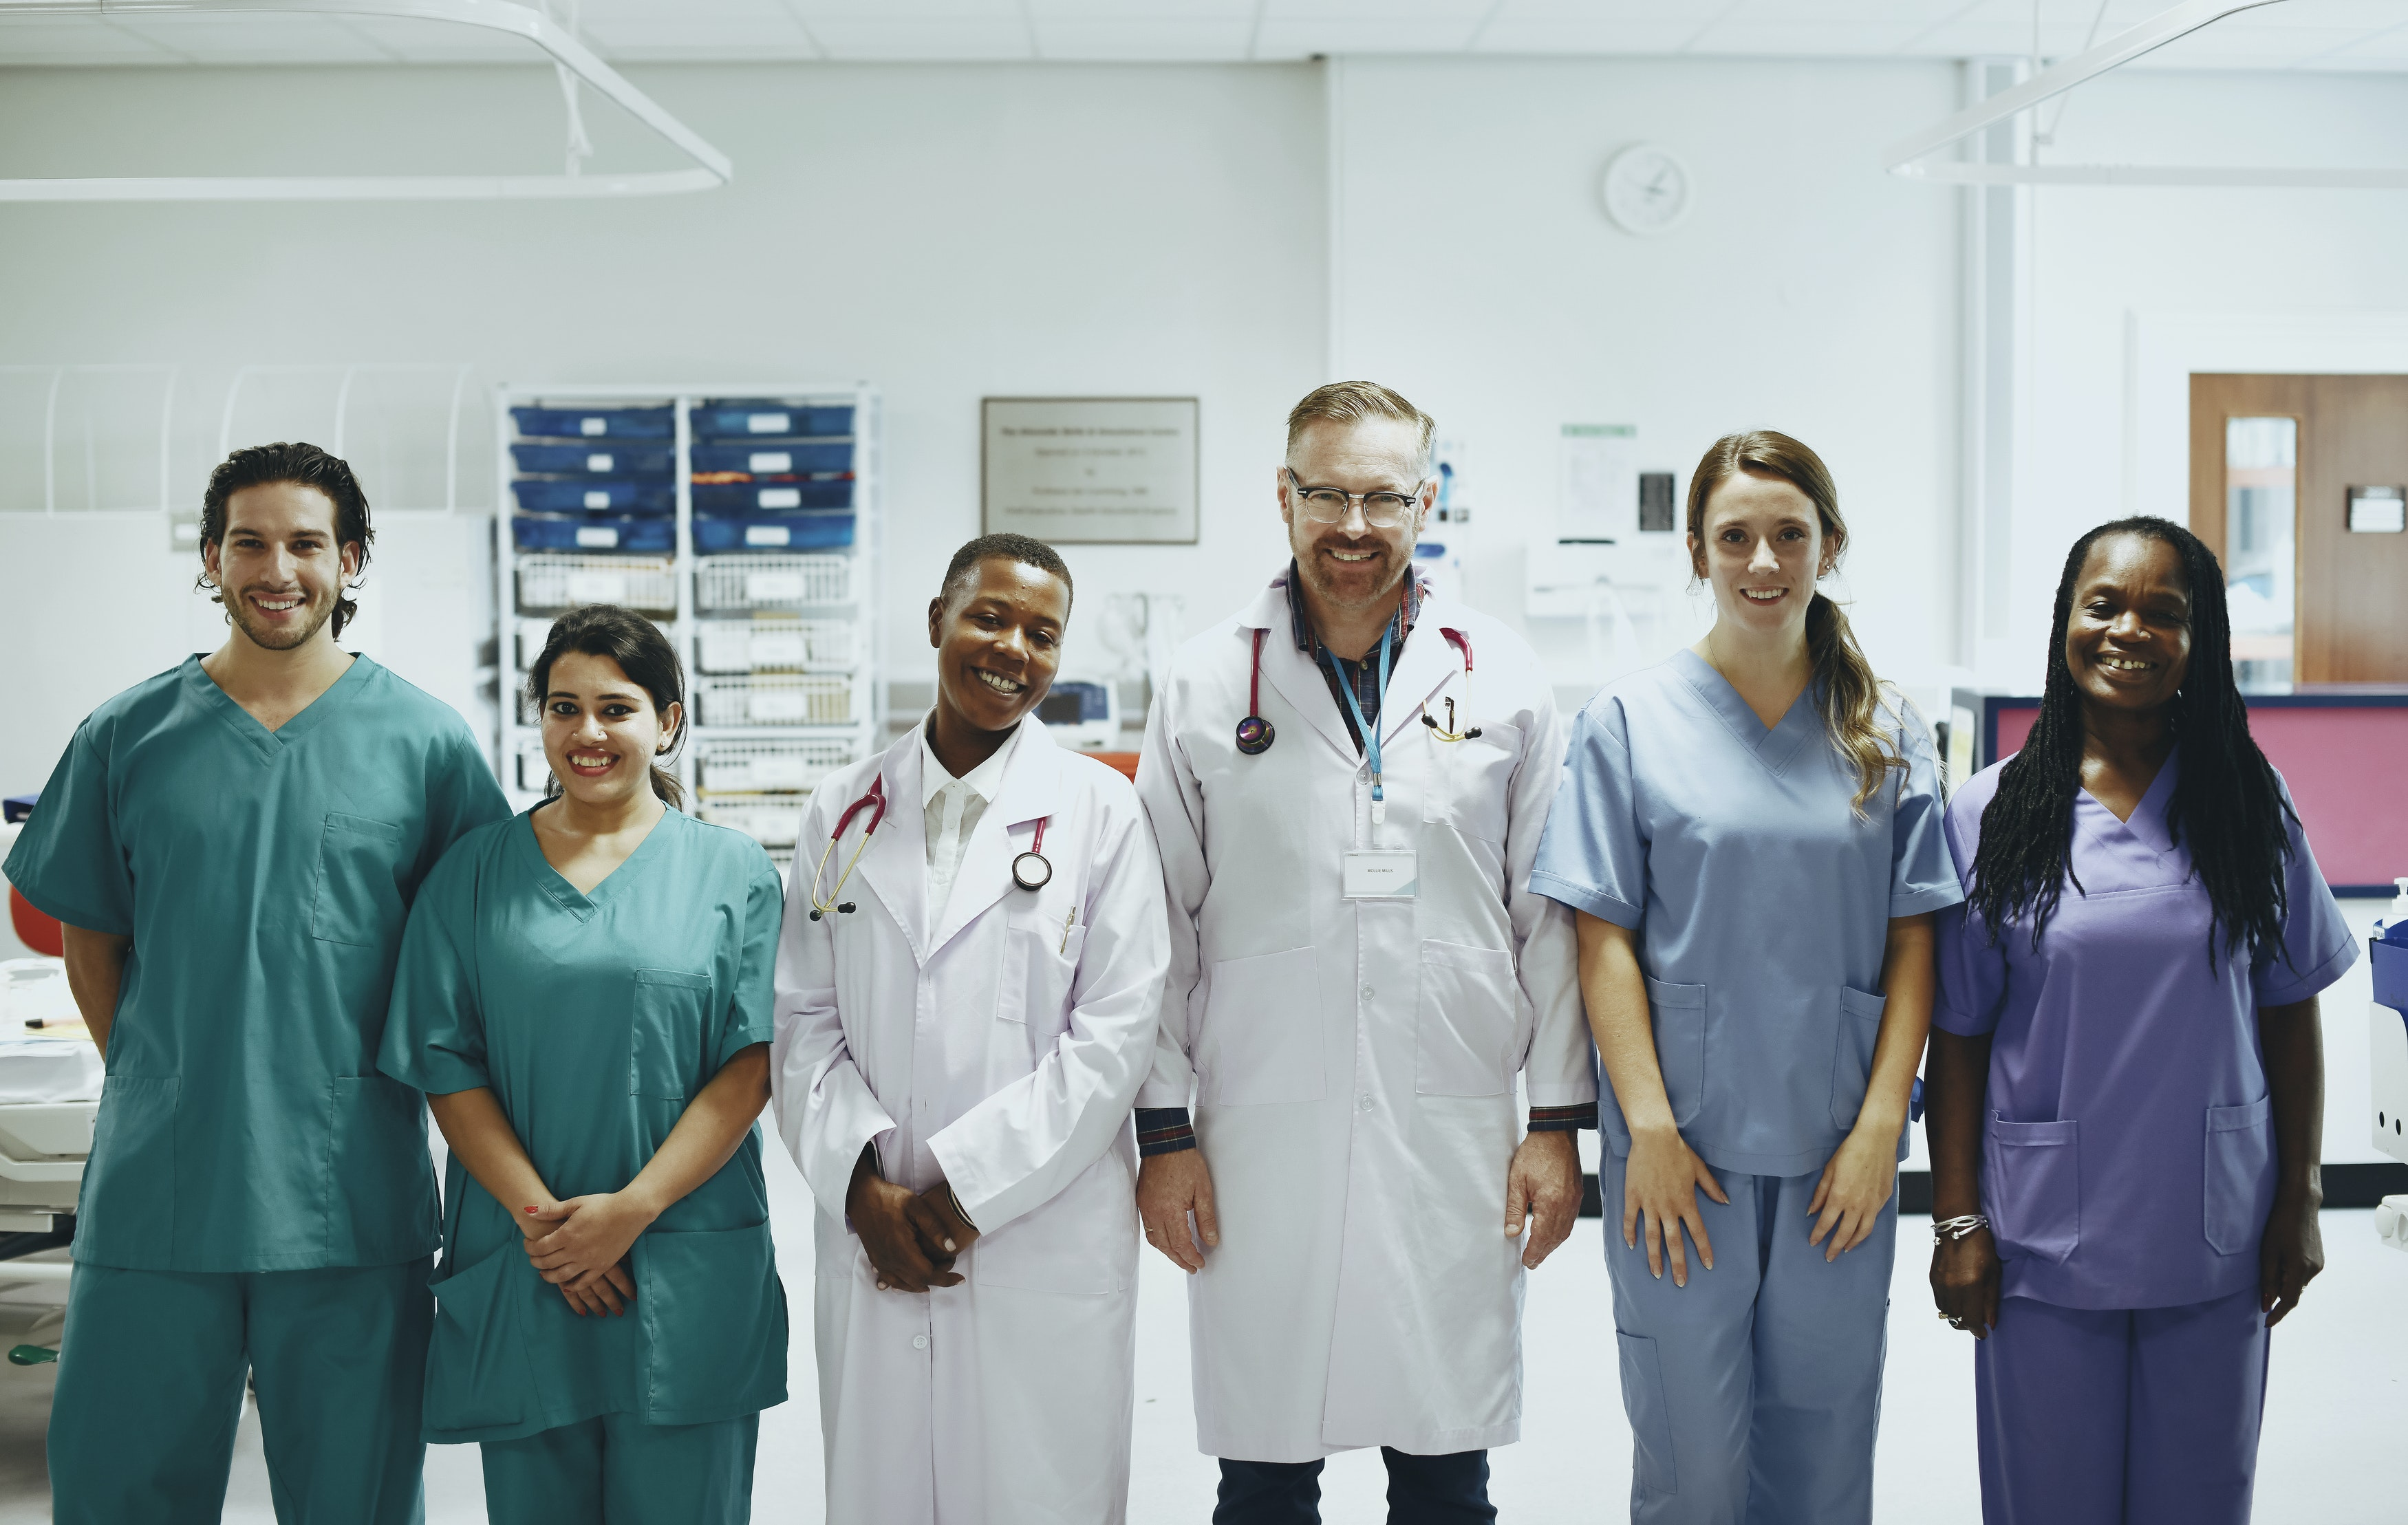 Doctors who find meaning in their job